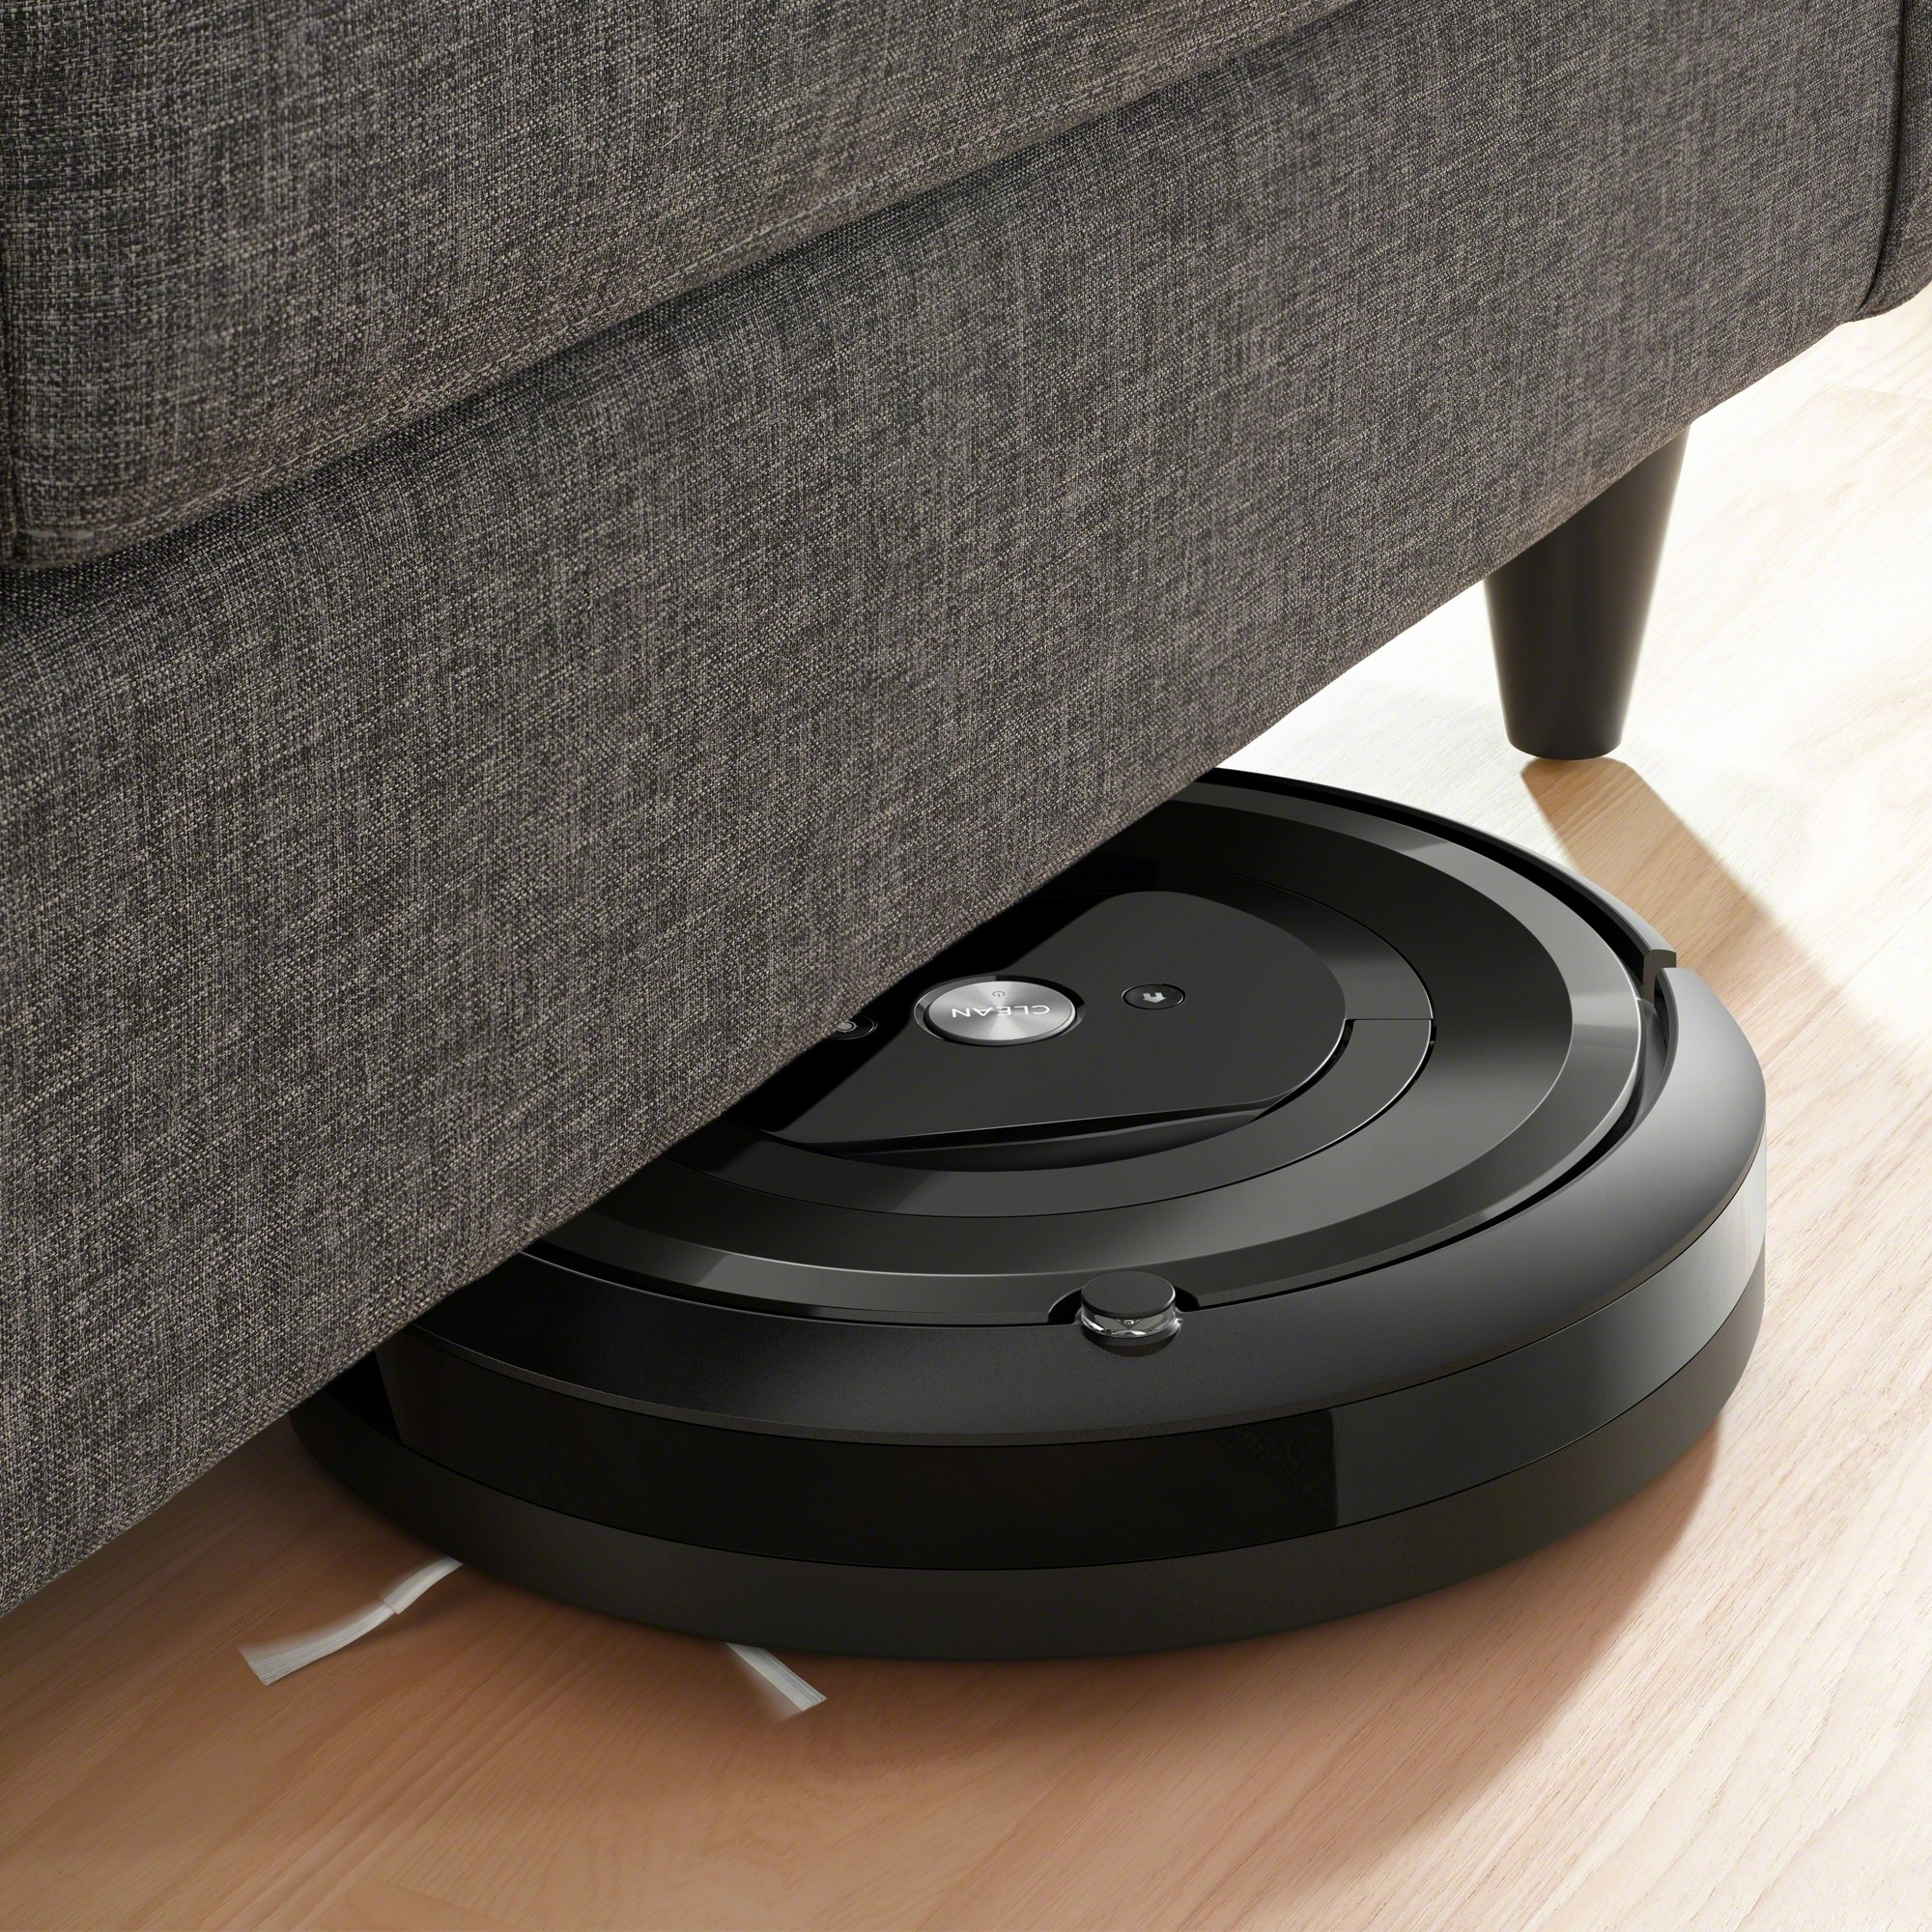 The round black vacuum, half underneath a couch